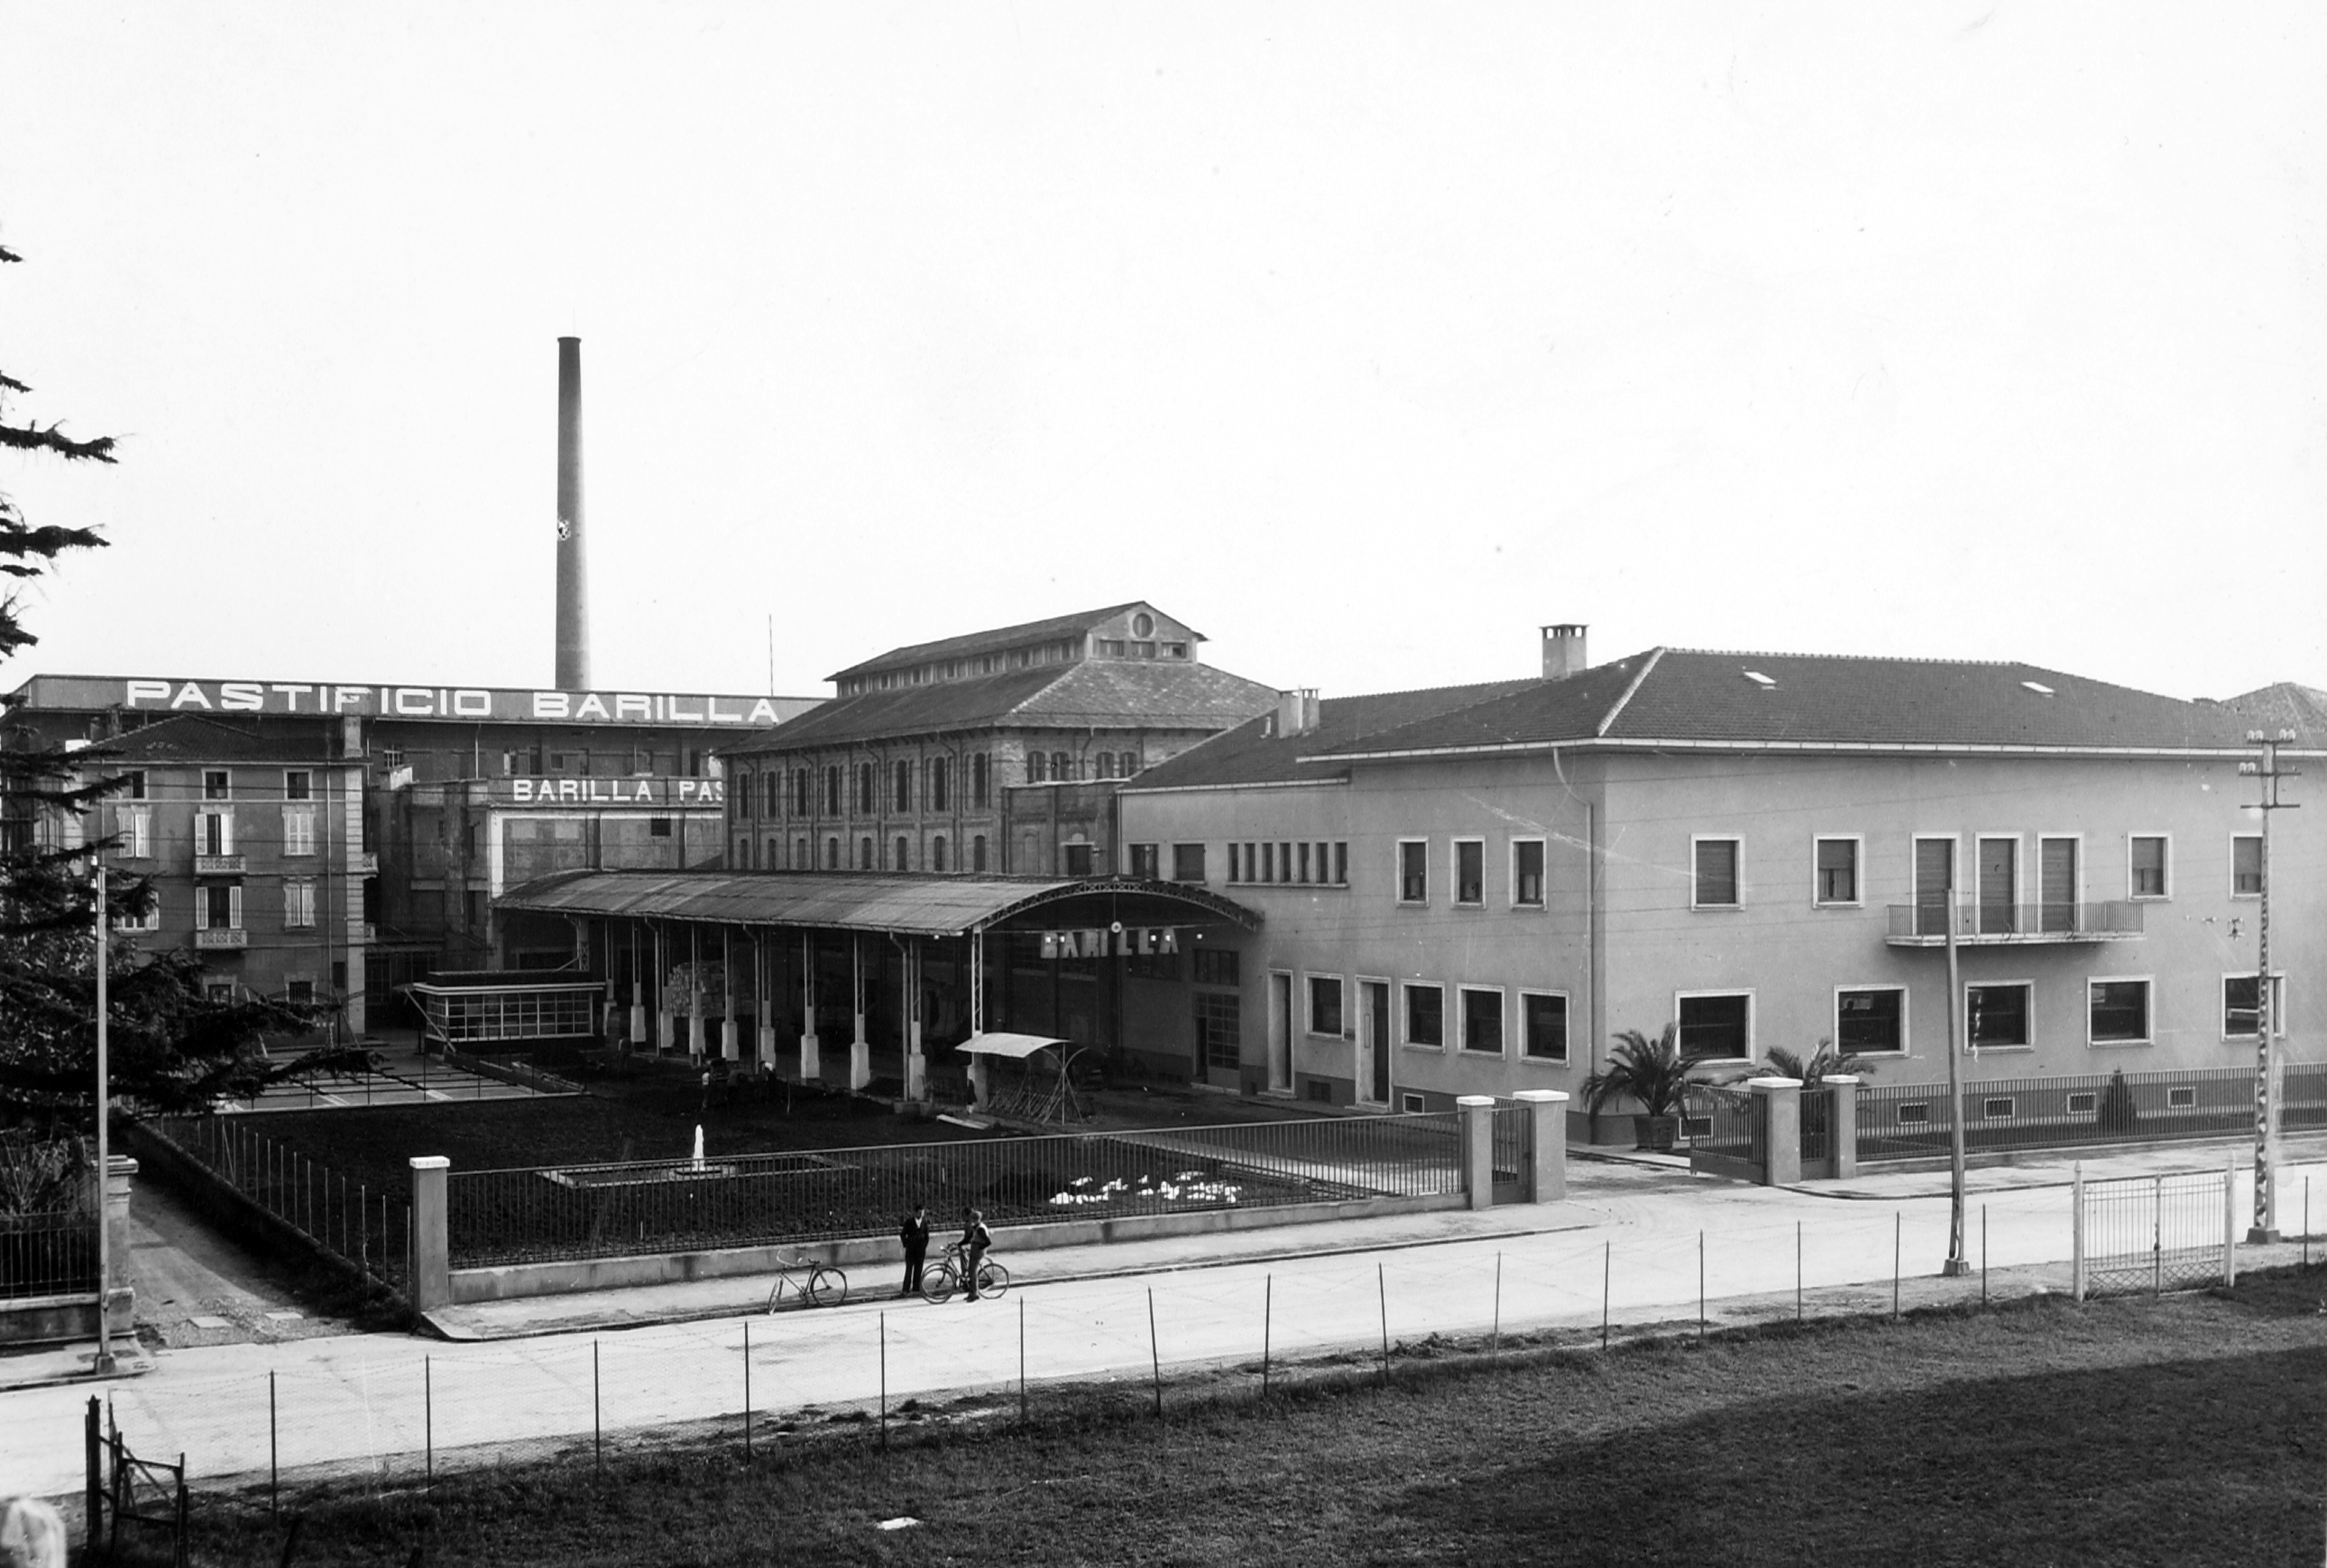 The industrial complex after the transformation made by the architect Karl Elsässer in 1933 with the Mill in the background [ASB, Aa 85].